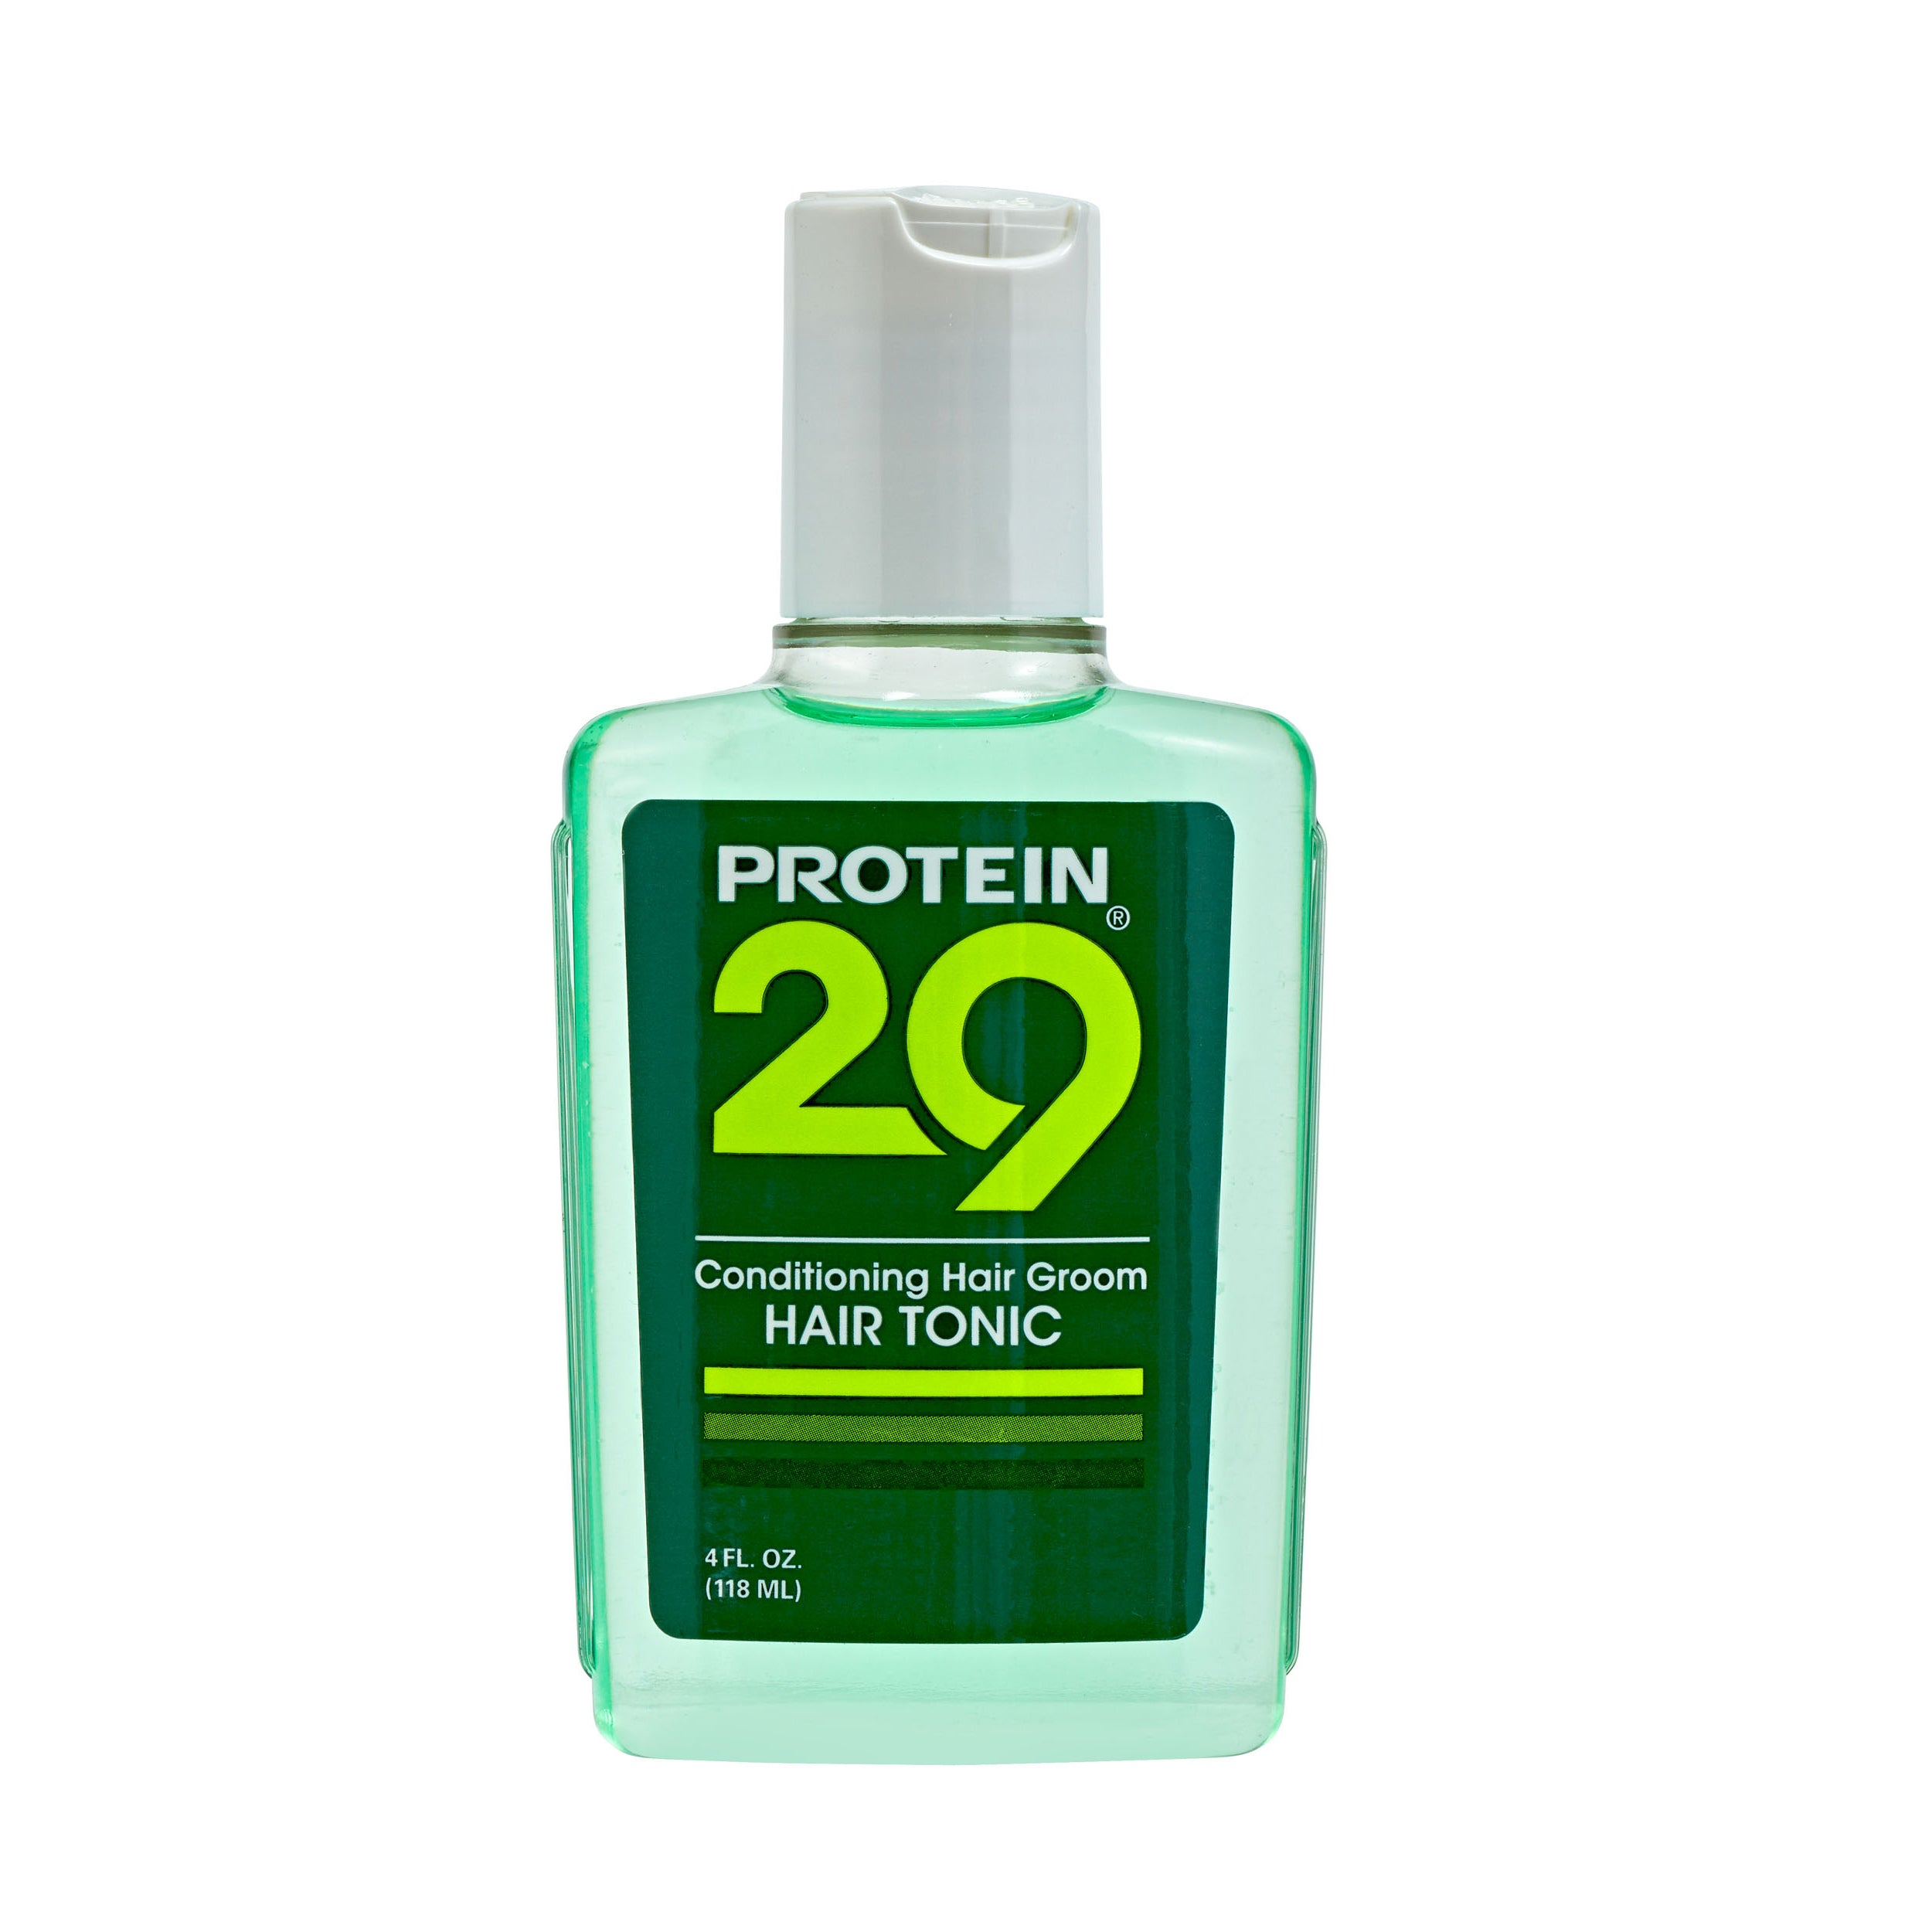 Protein 29 Conditioning Hair Groom Tonic